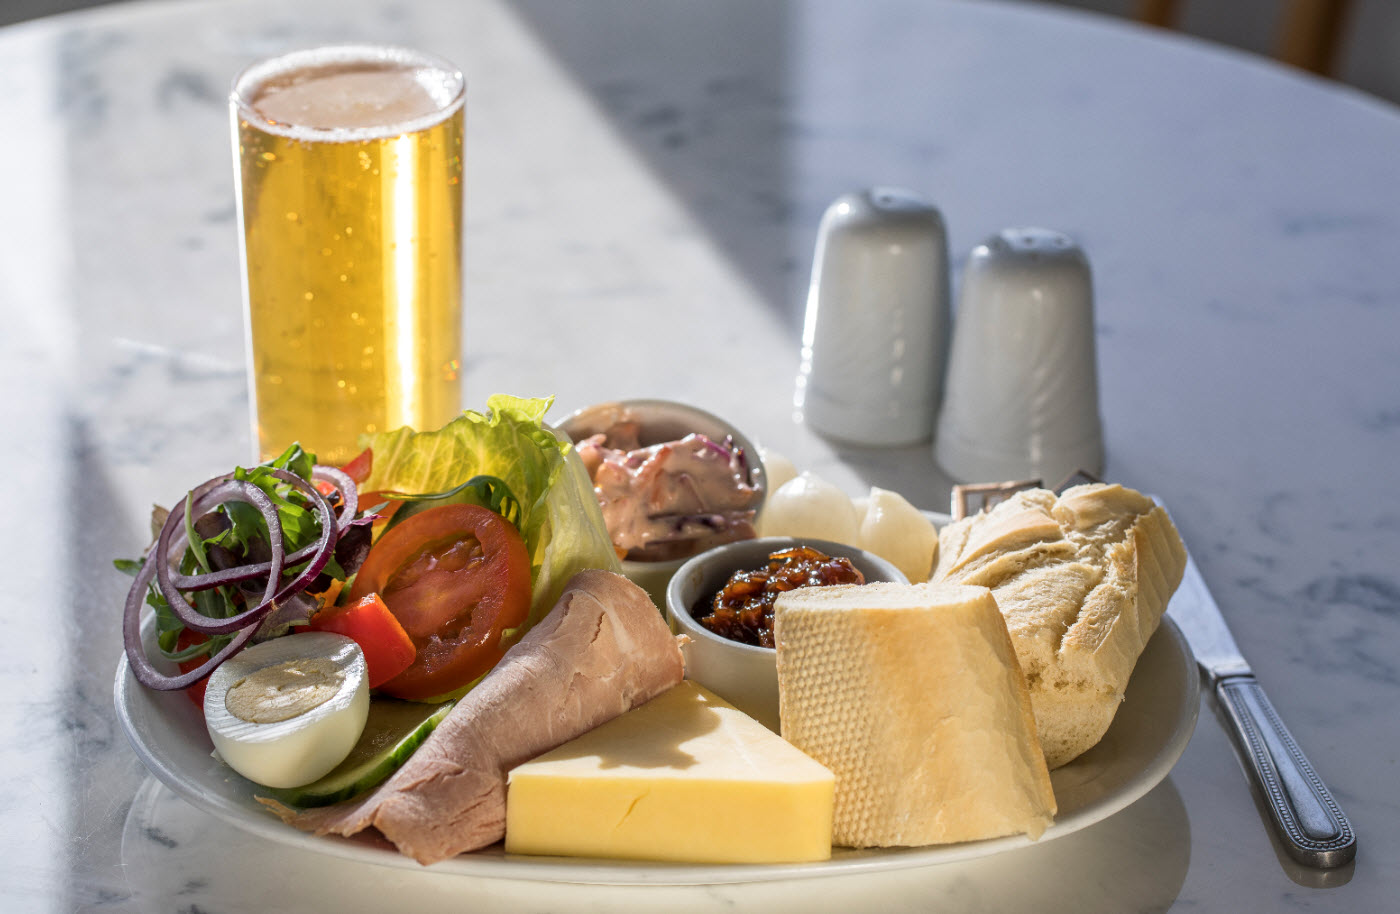 Mature Cheddar and Ham Ploughman's at The Lobster Pot